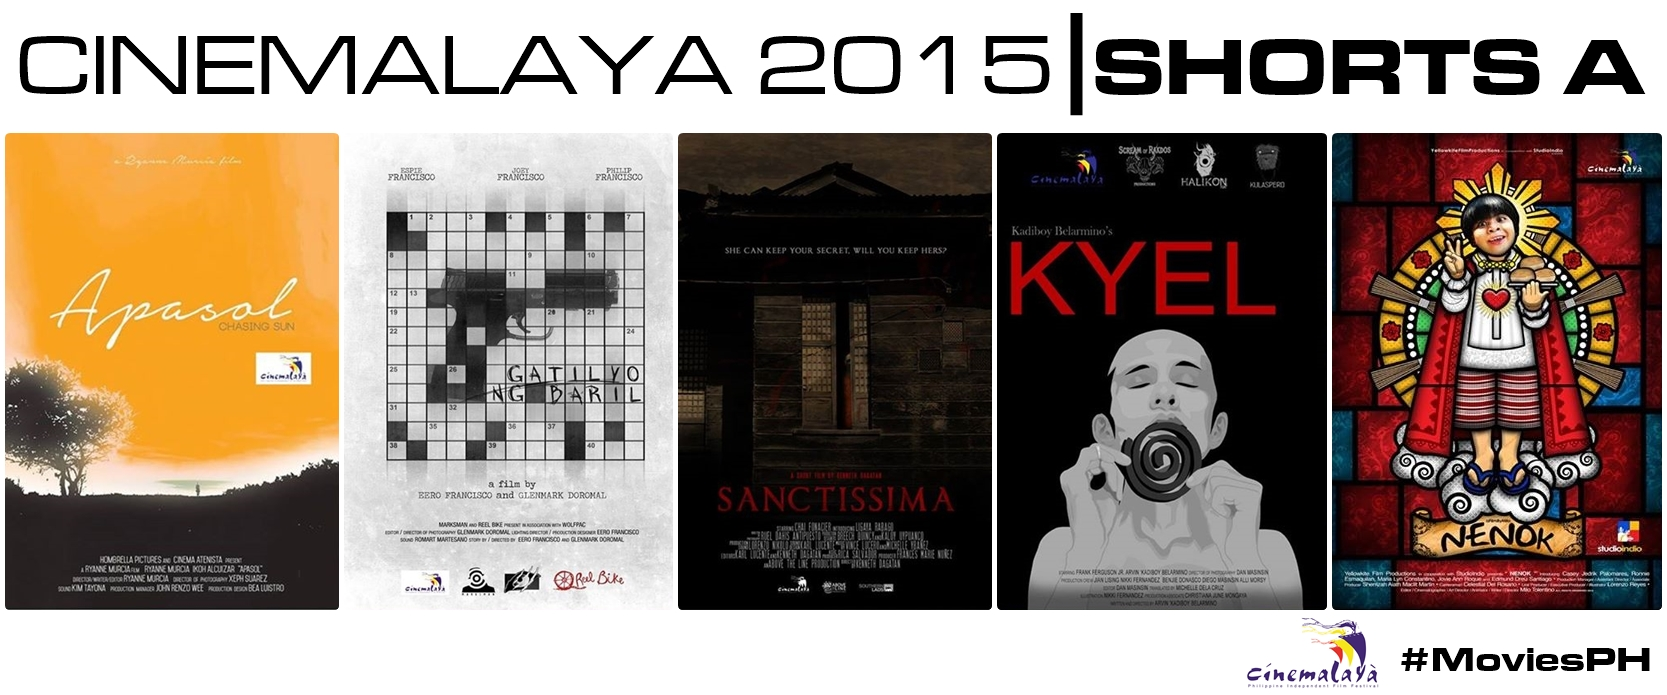 Cinemalaya How to get festival passes and tickets